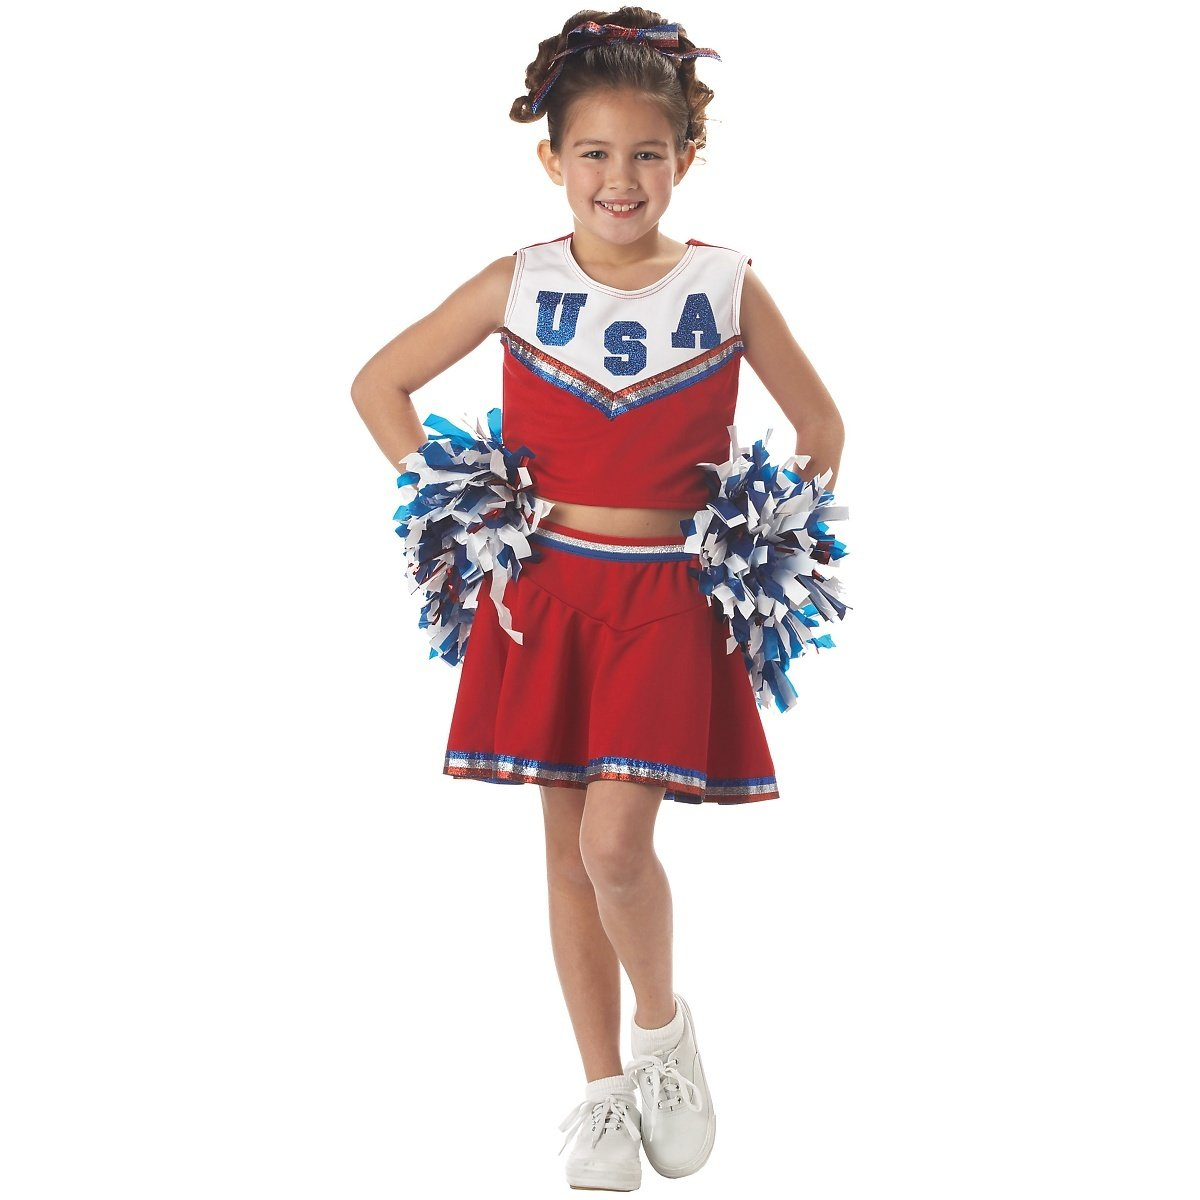 Amazon.com California Costumes Patriotic Cheerleader CostumeRedLarge Toys u0026 Games  sc 1 st  Amazon.com & Amazon.com: California Costumes Patriotic Cheerleader CostumeRed ...